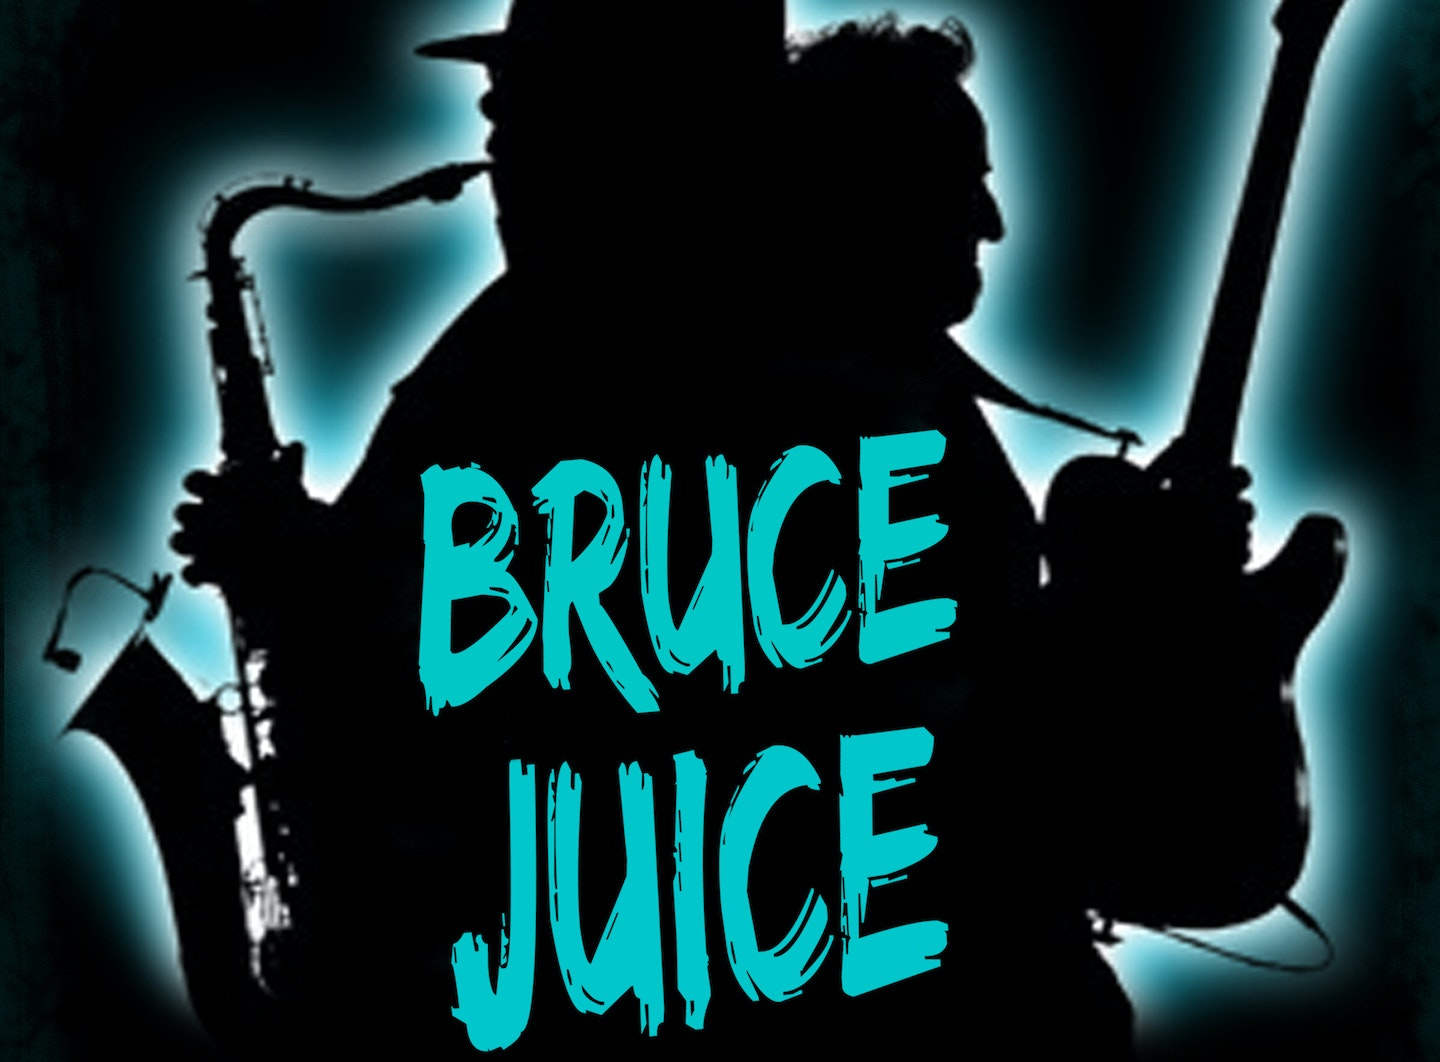 BRUCE JUICE – THE SPRINGSTEEN TRIBUTE BAND